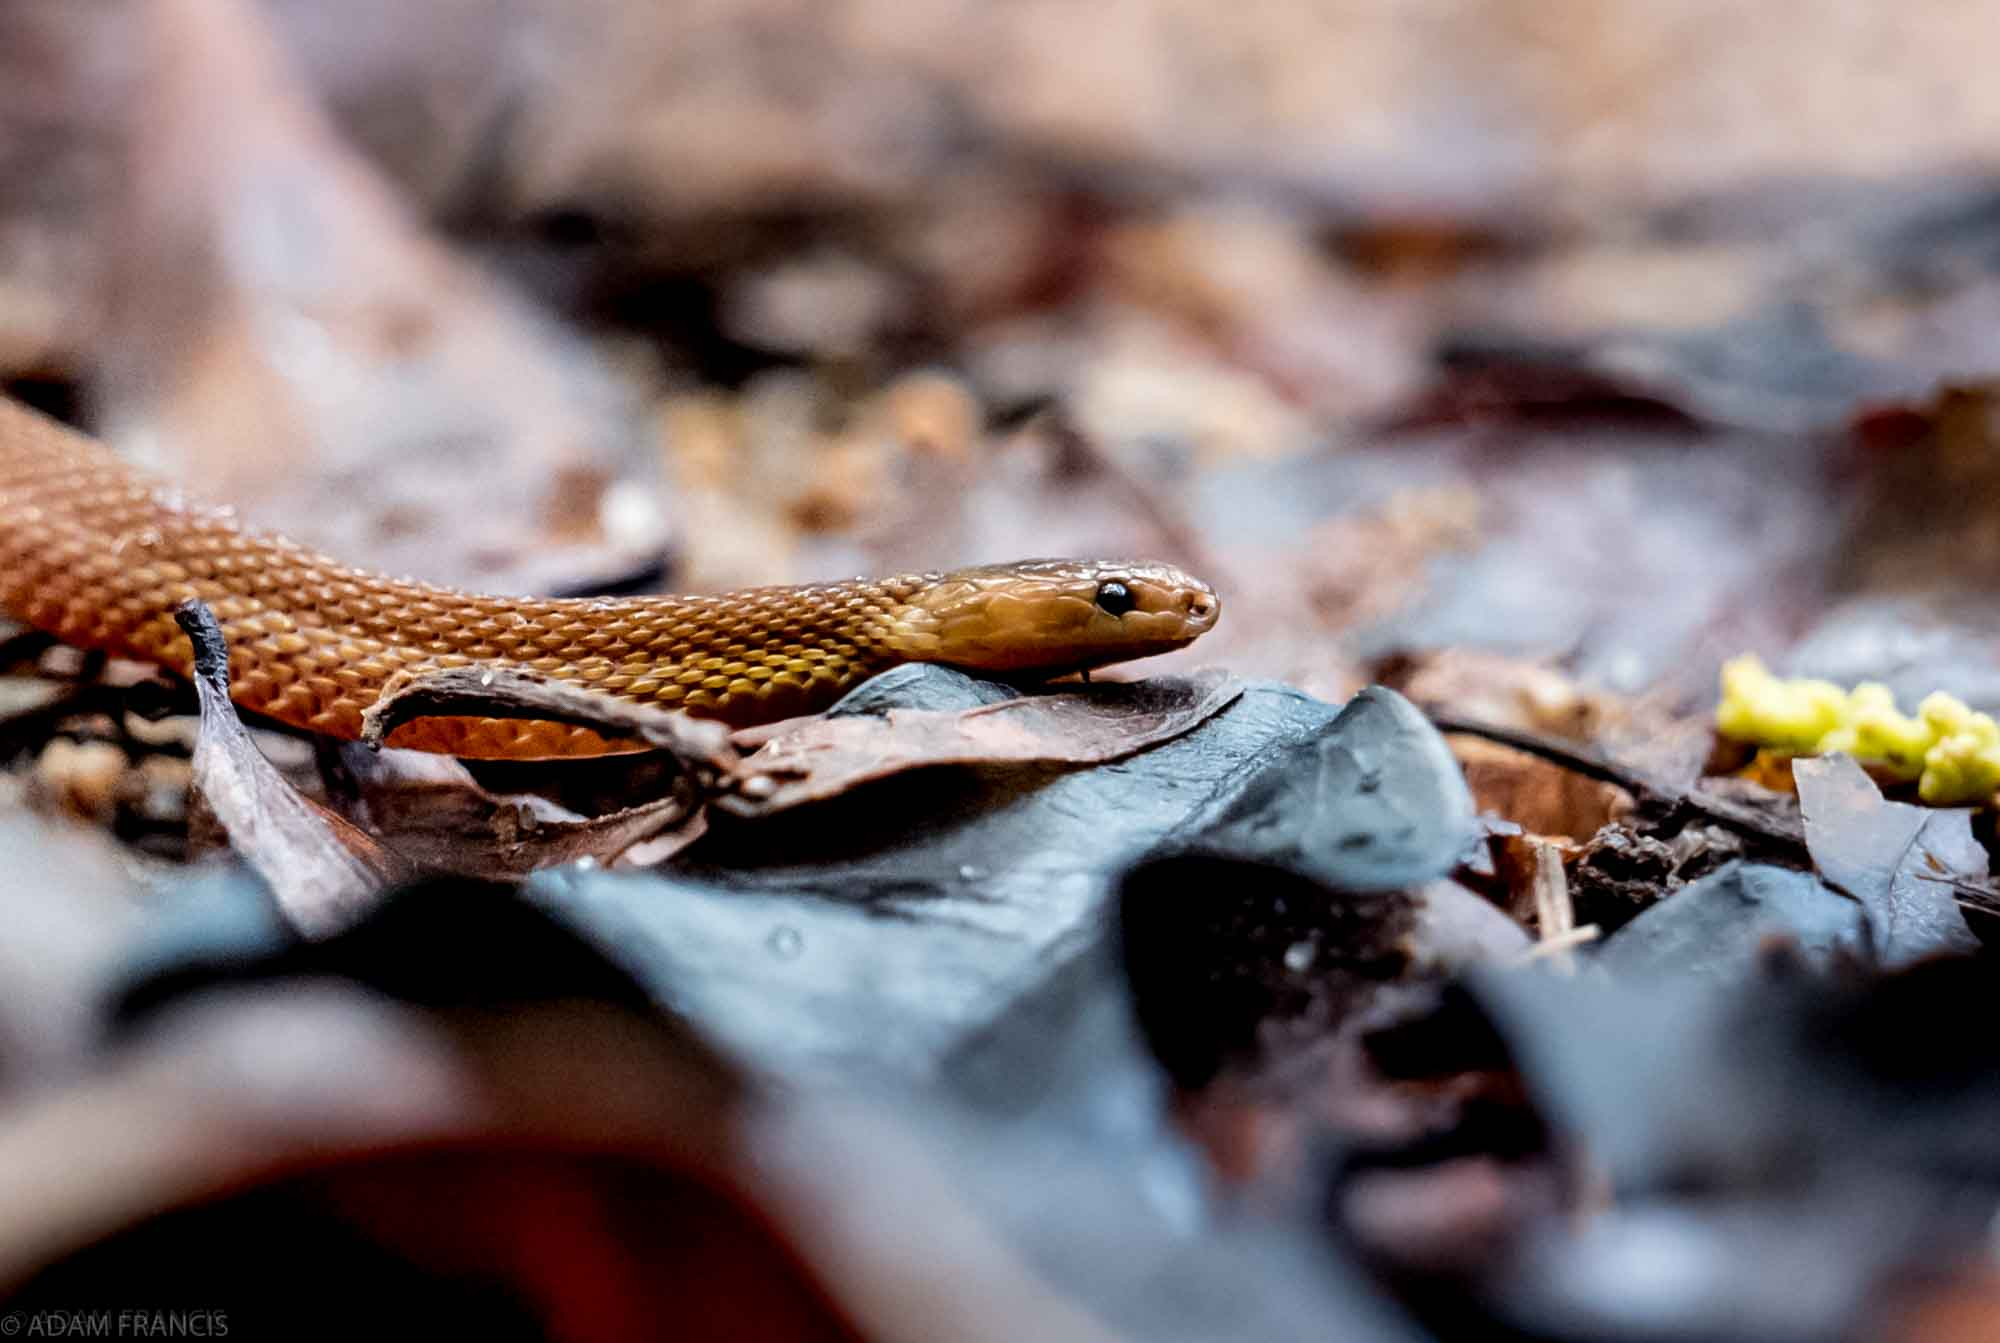 Copy of Burrowing Rufous Snake